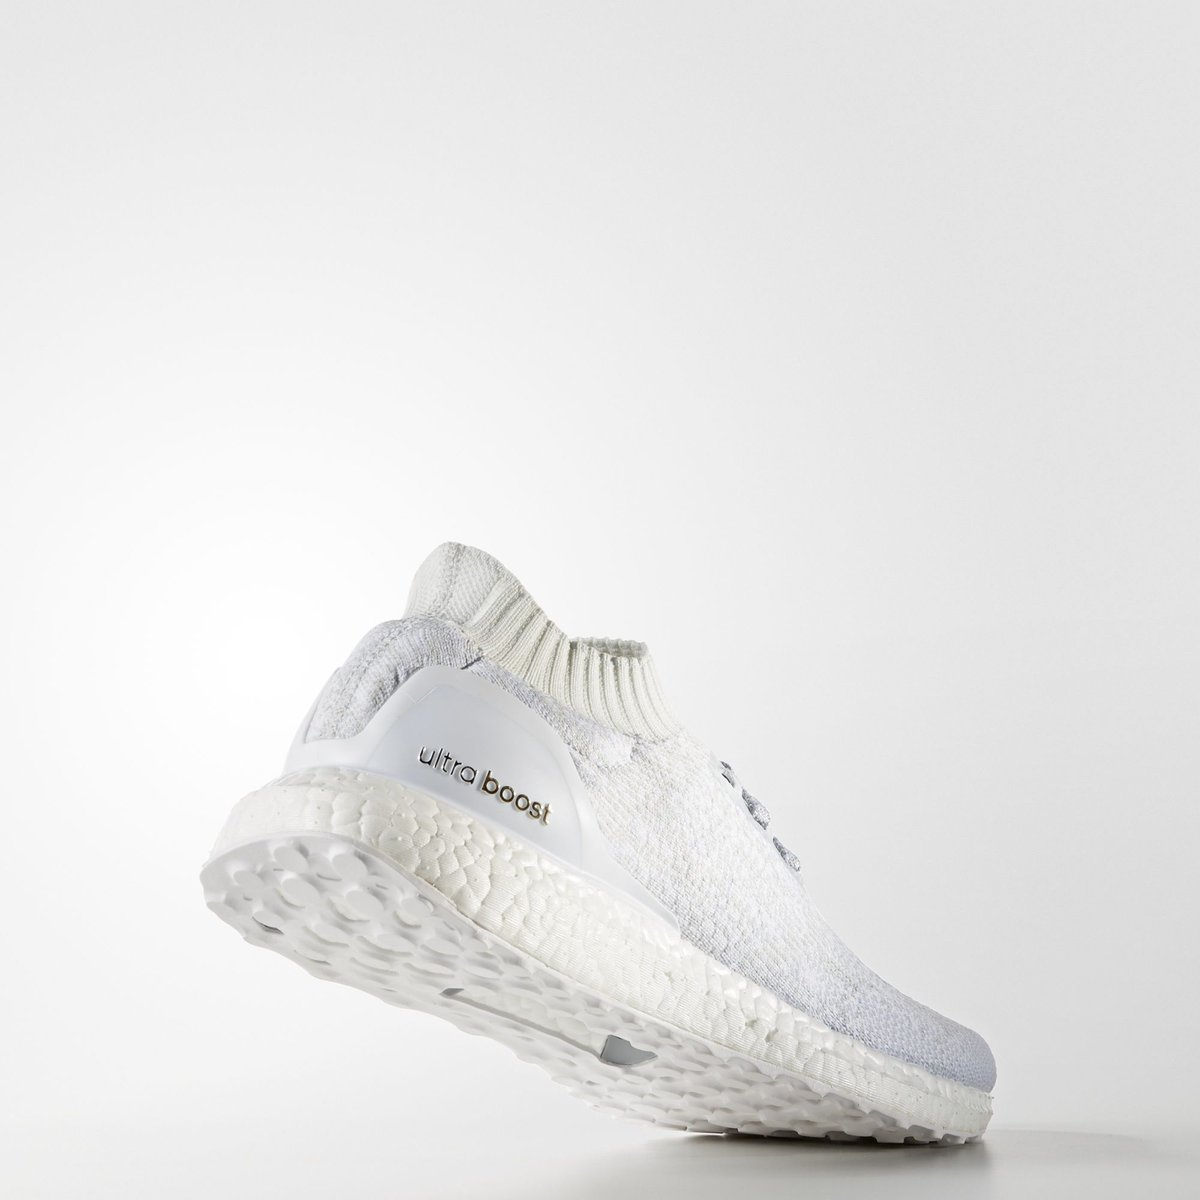 4197c0641 adidas Ultra Boost Uncaged  White  is also dropping tomorrow. Countdown     http   bit.ly 292m4J4 pic.twitter.com IG0X8qM5lL